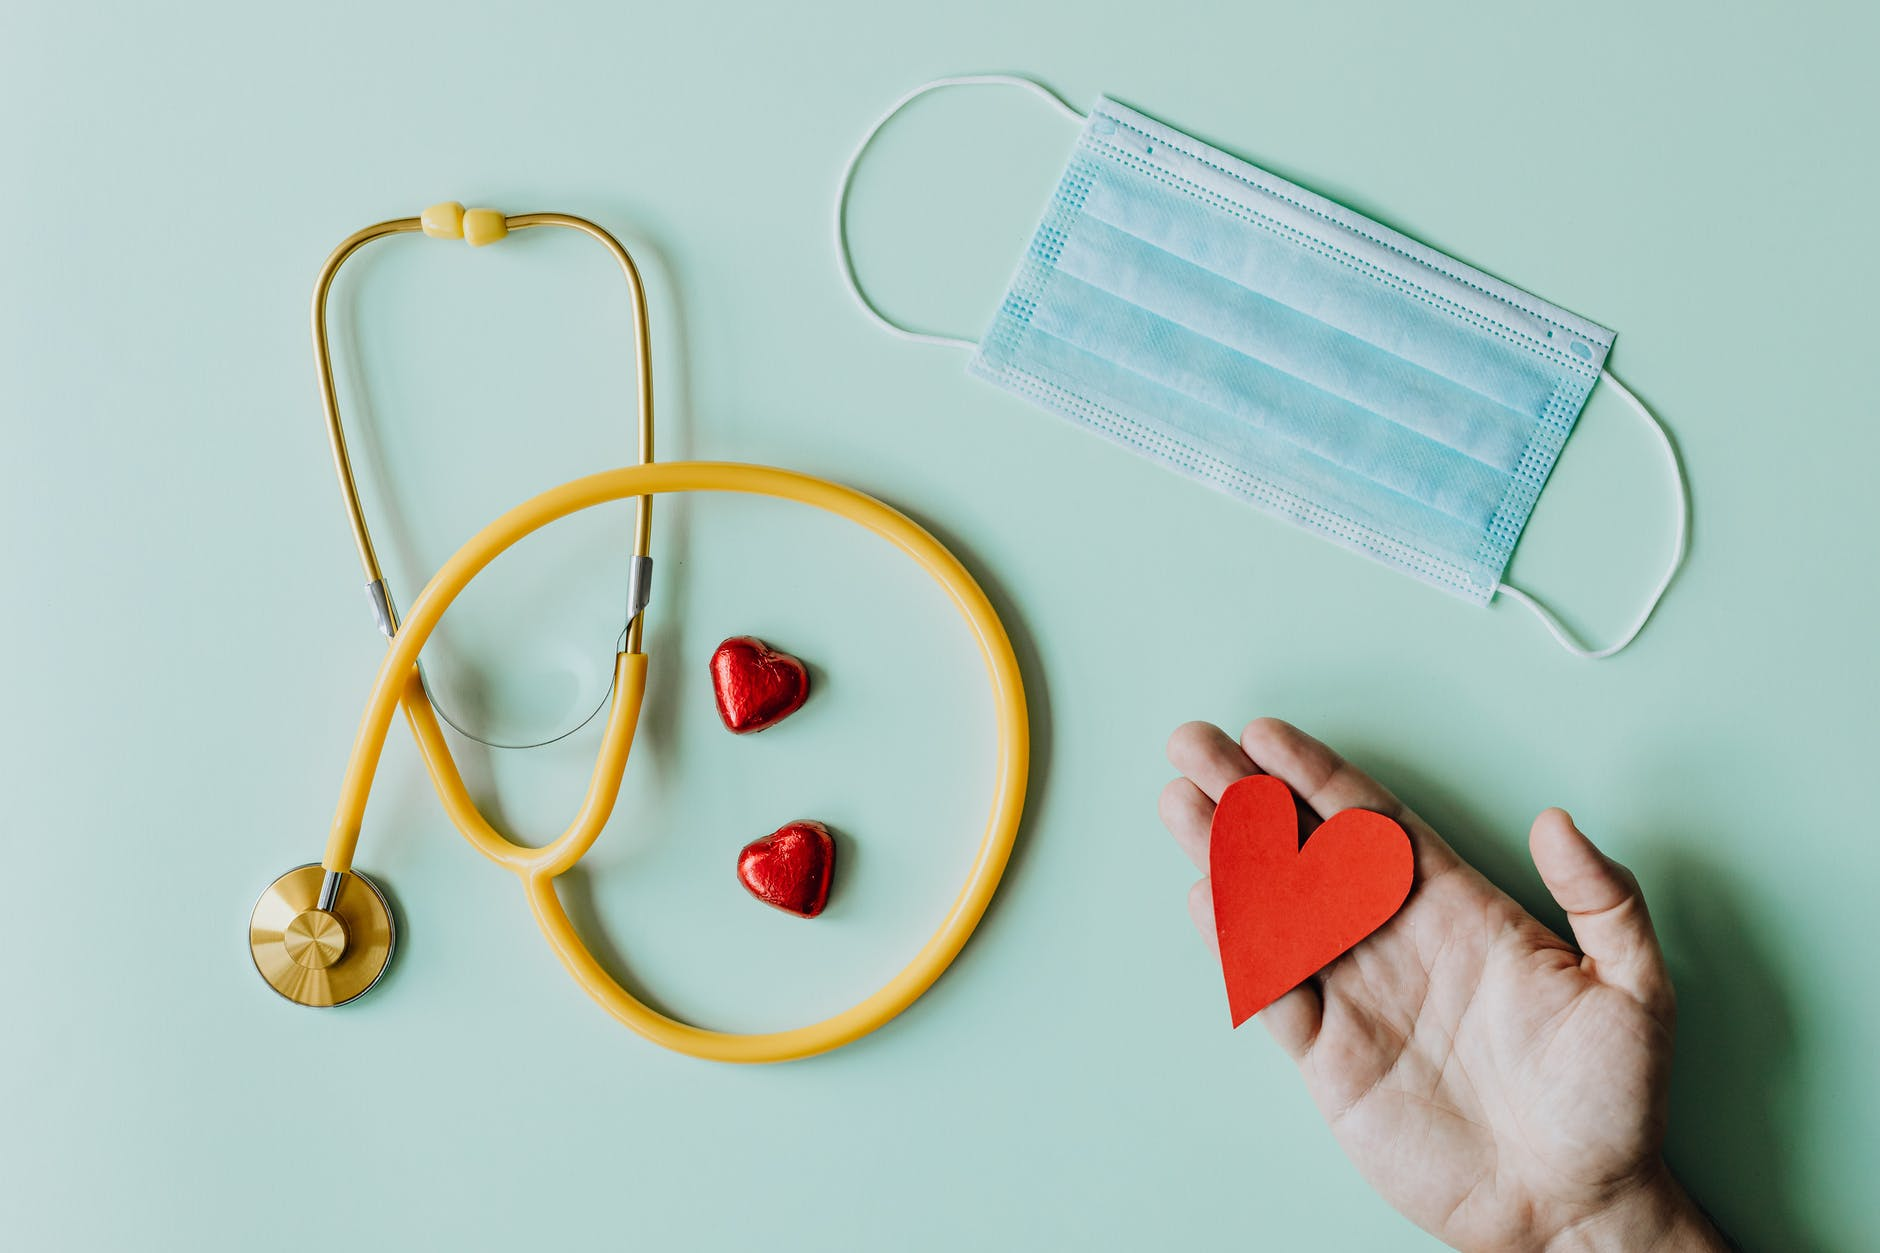 medical stethoscope and mask composed with red foiled chocolate hearts